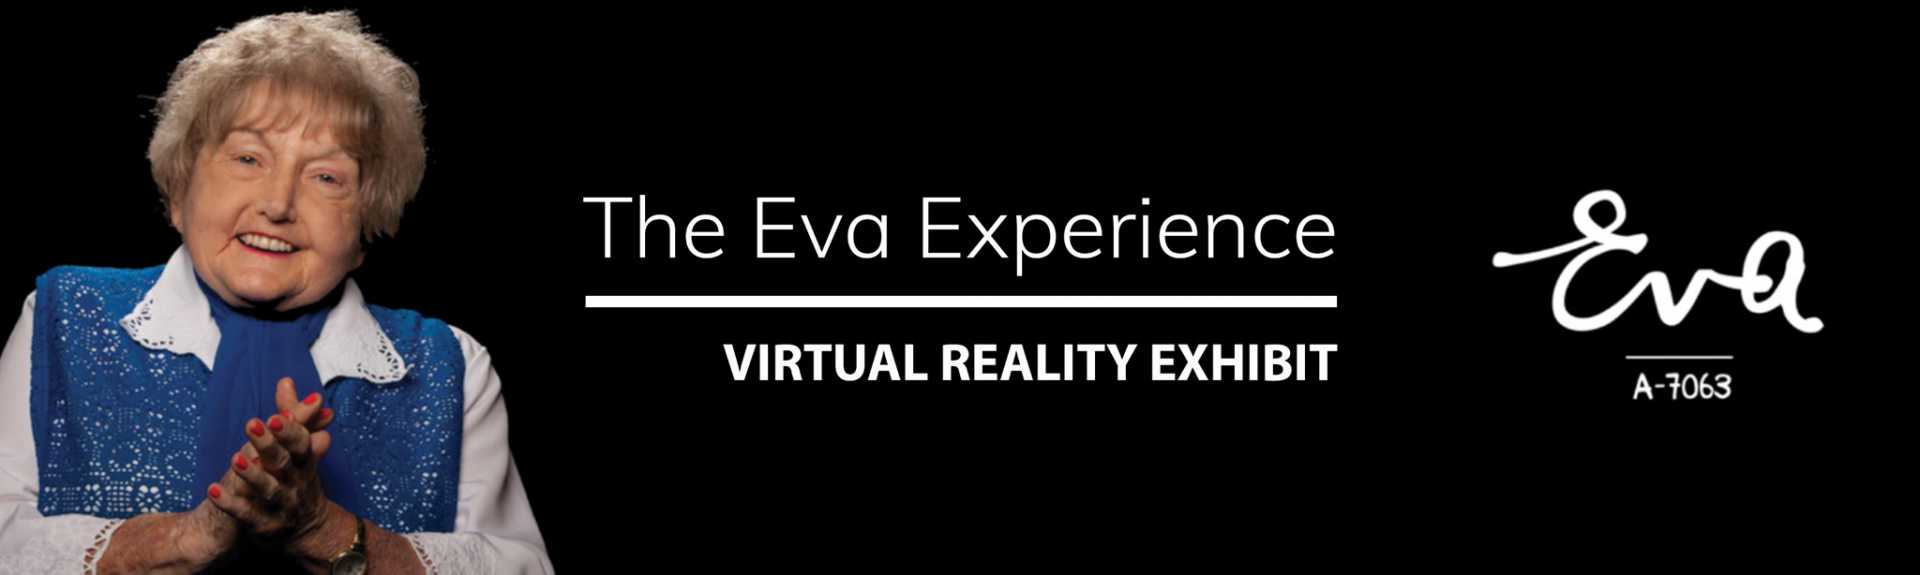 The Eva Experience - VR Exhibit